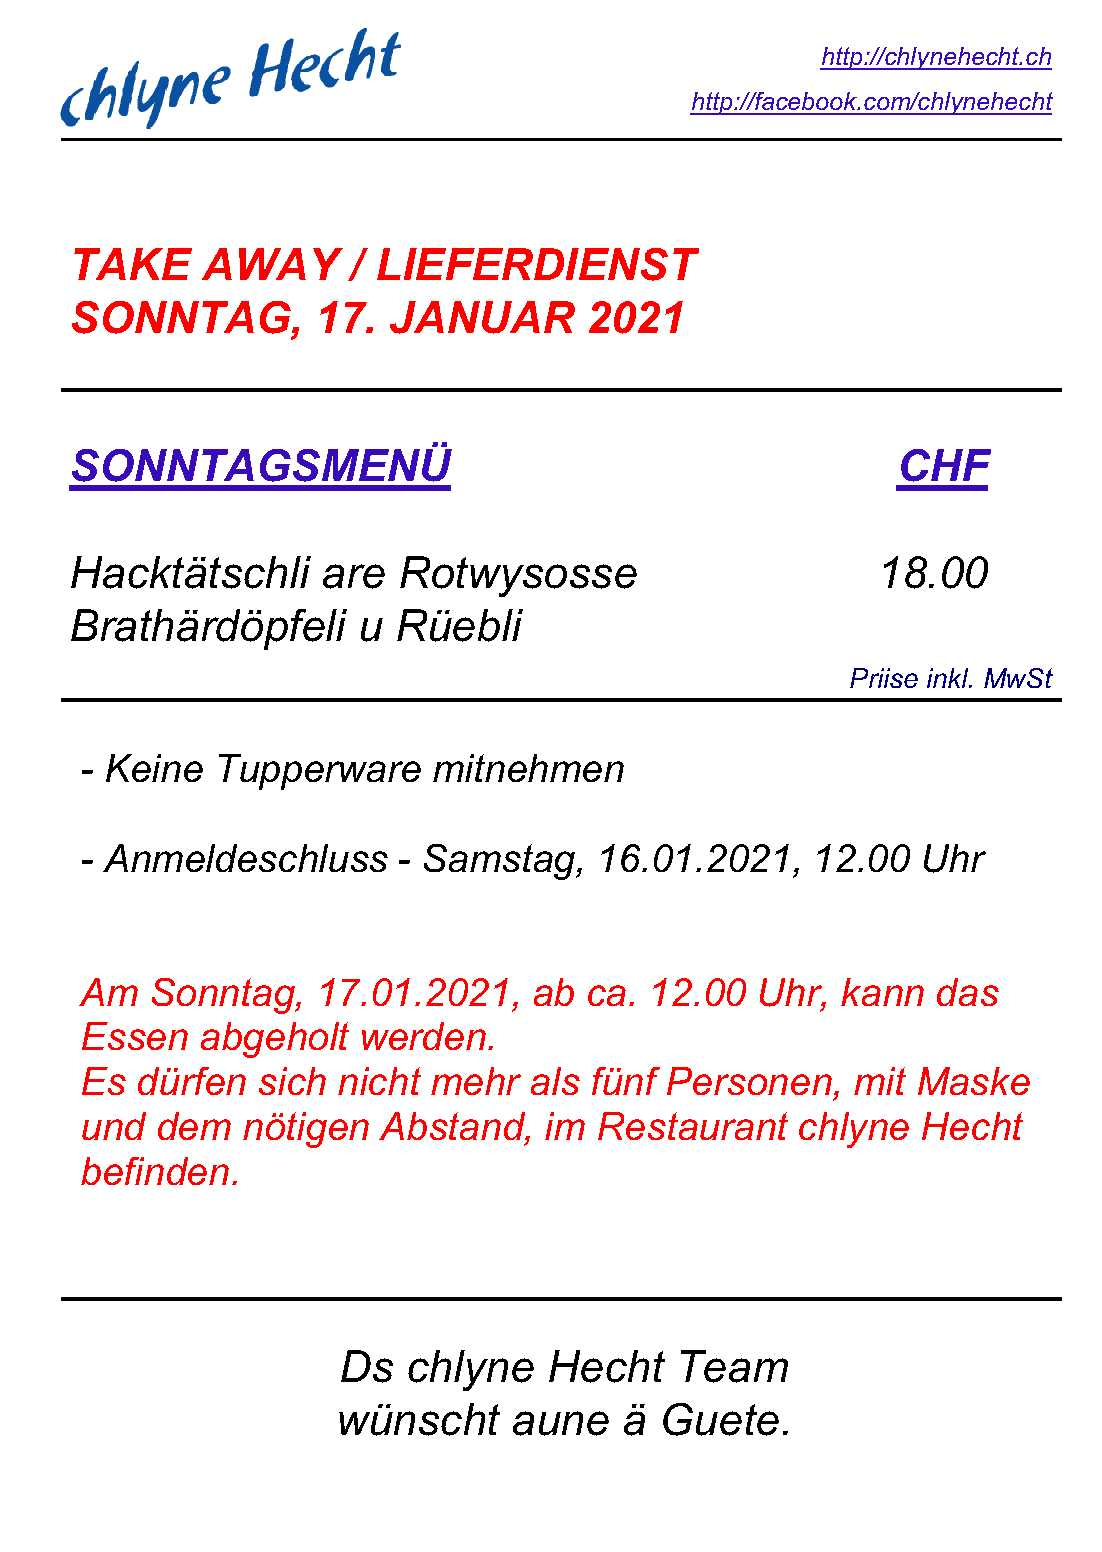 image-10951307-Take_away,_Sonntagsmenü_Internet__Facebook-17.01.2021-c51ce.jpg?1610562215123